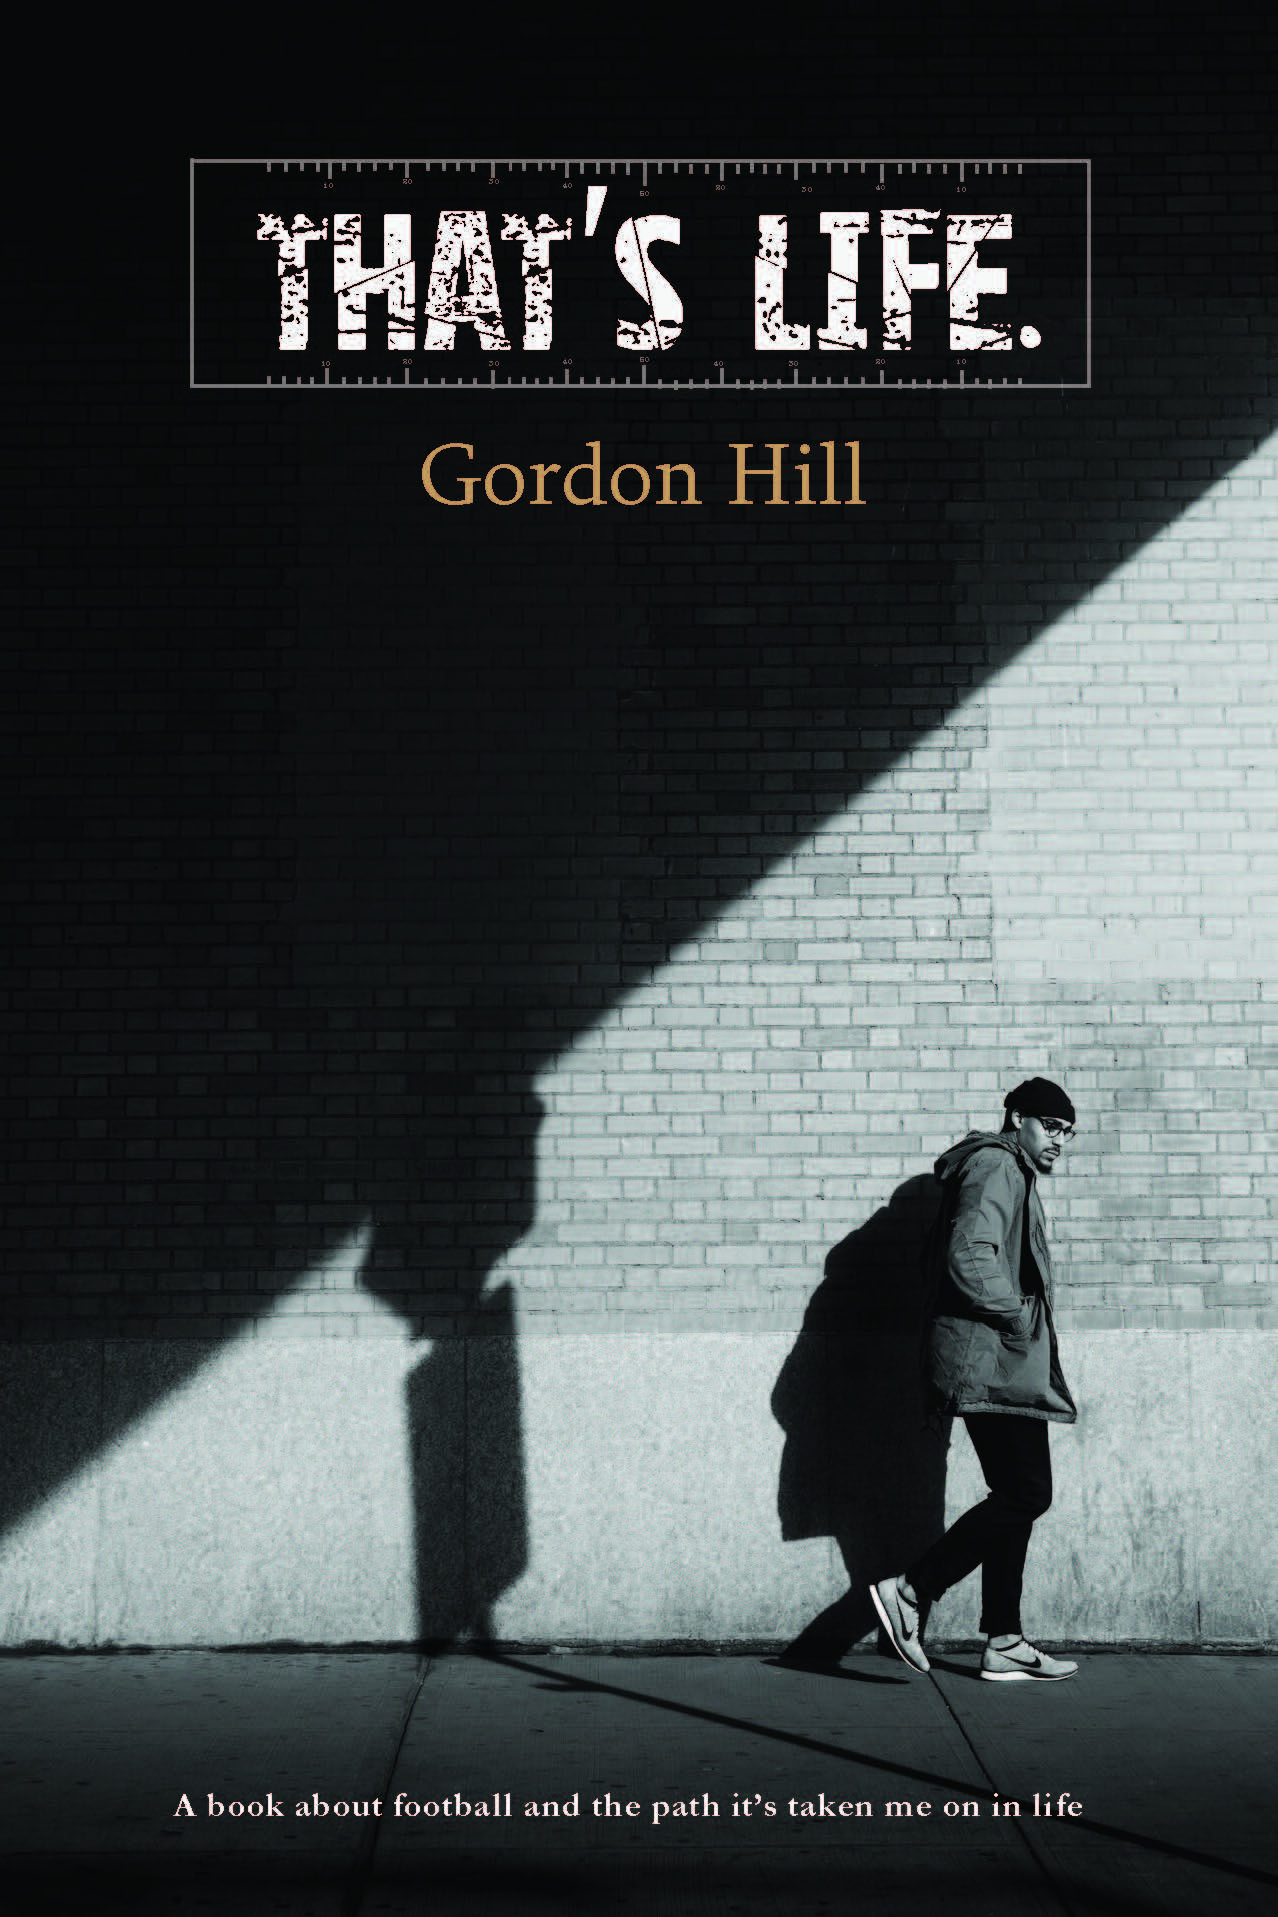 Gordon Hill Book Cover.jpg